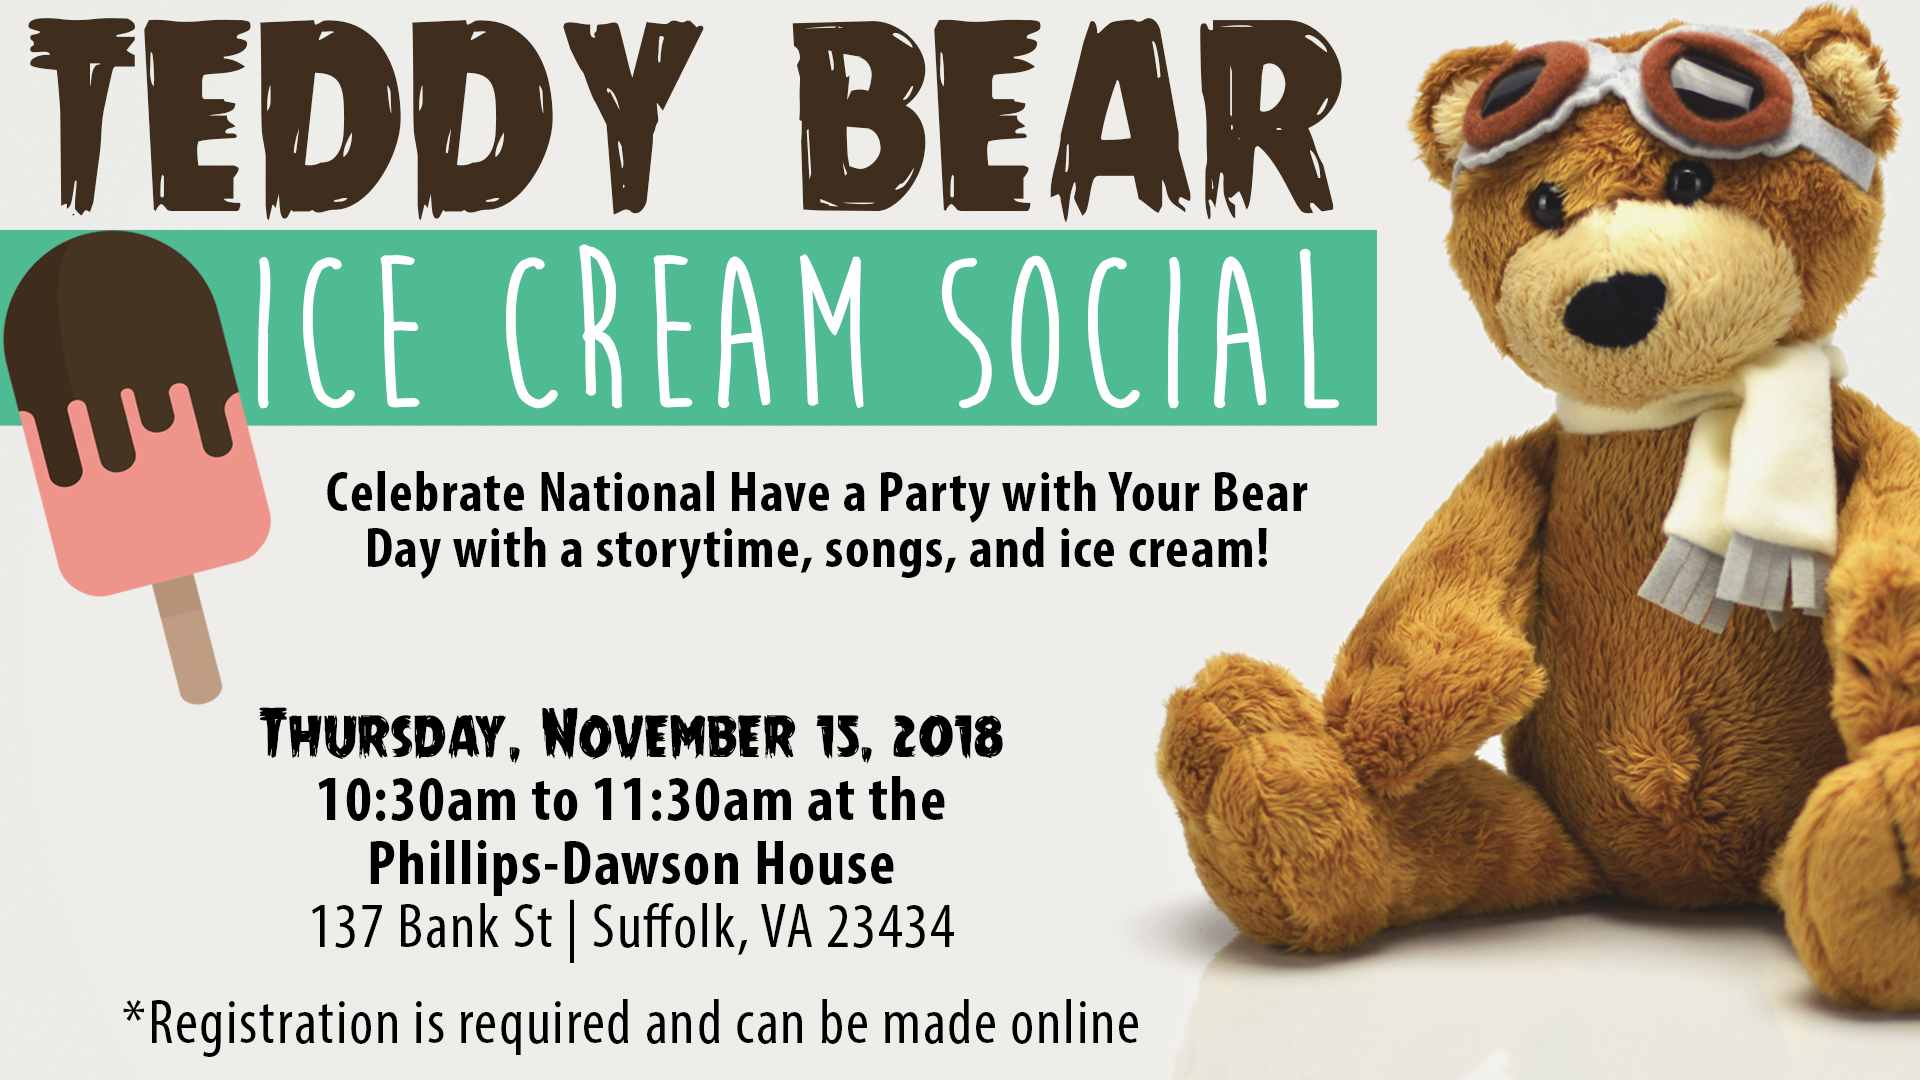 Teddy Bear Ice Cream Social